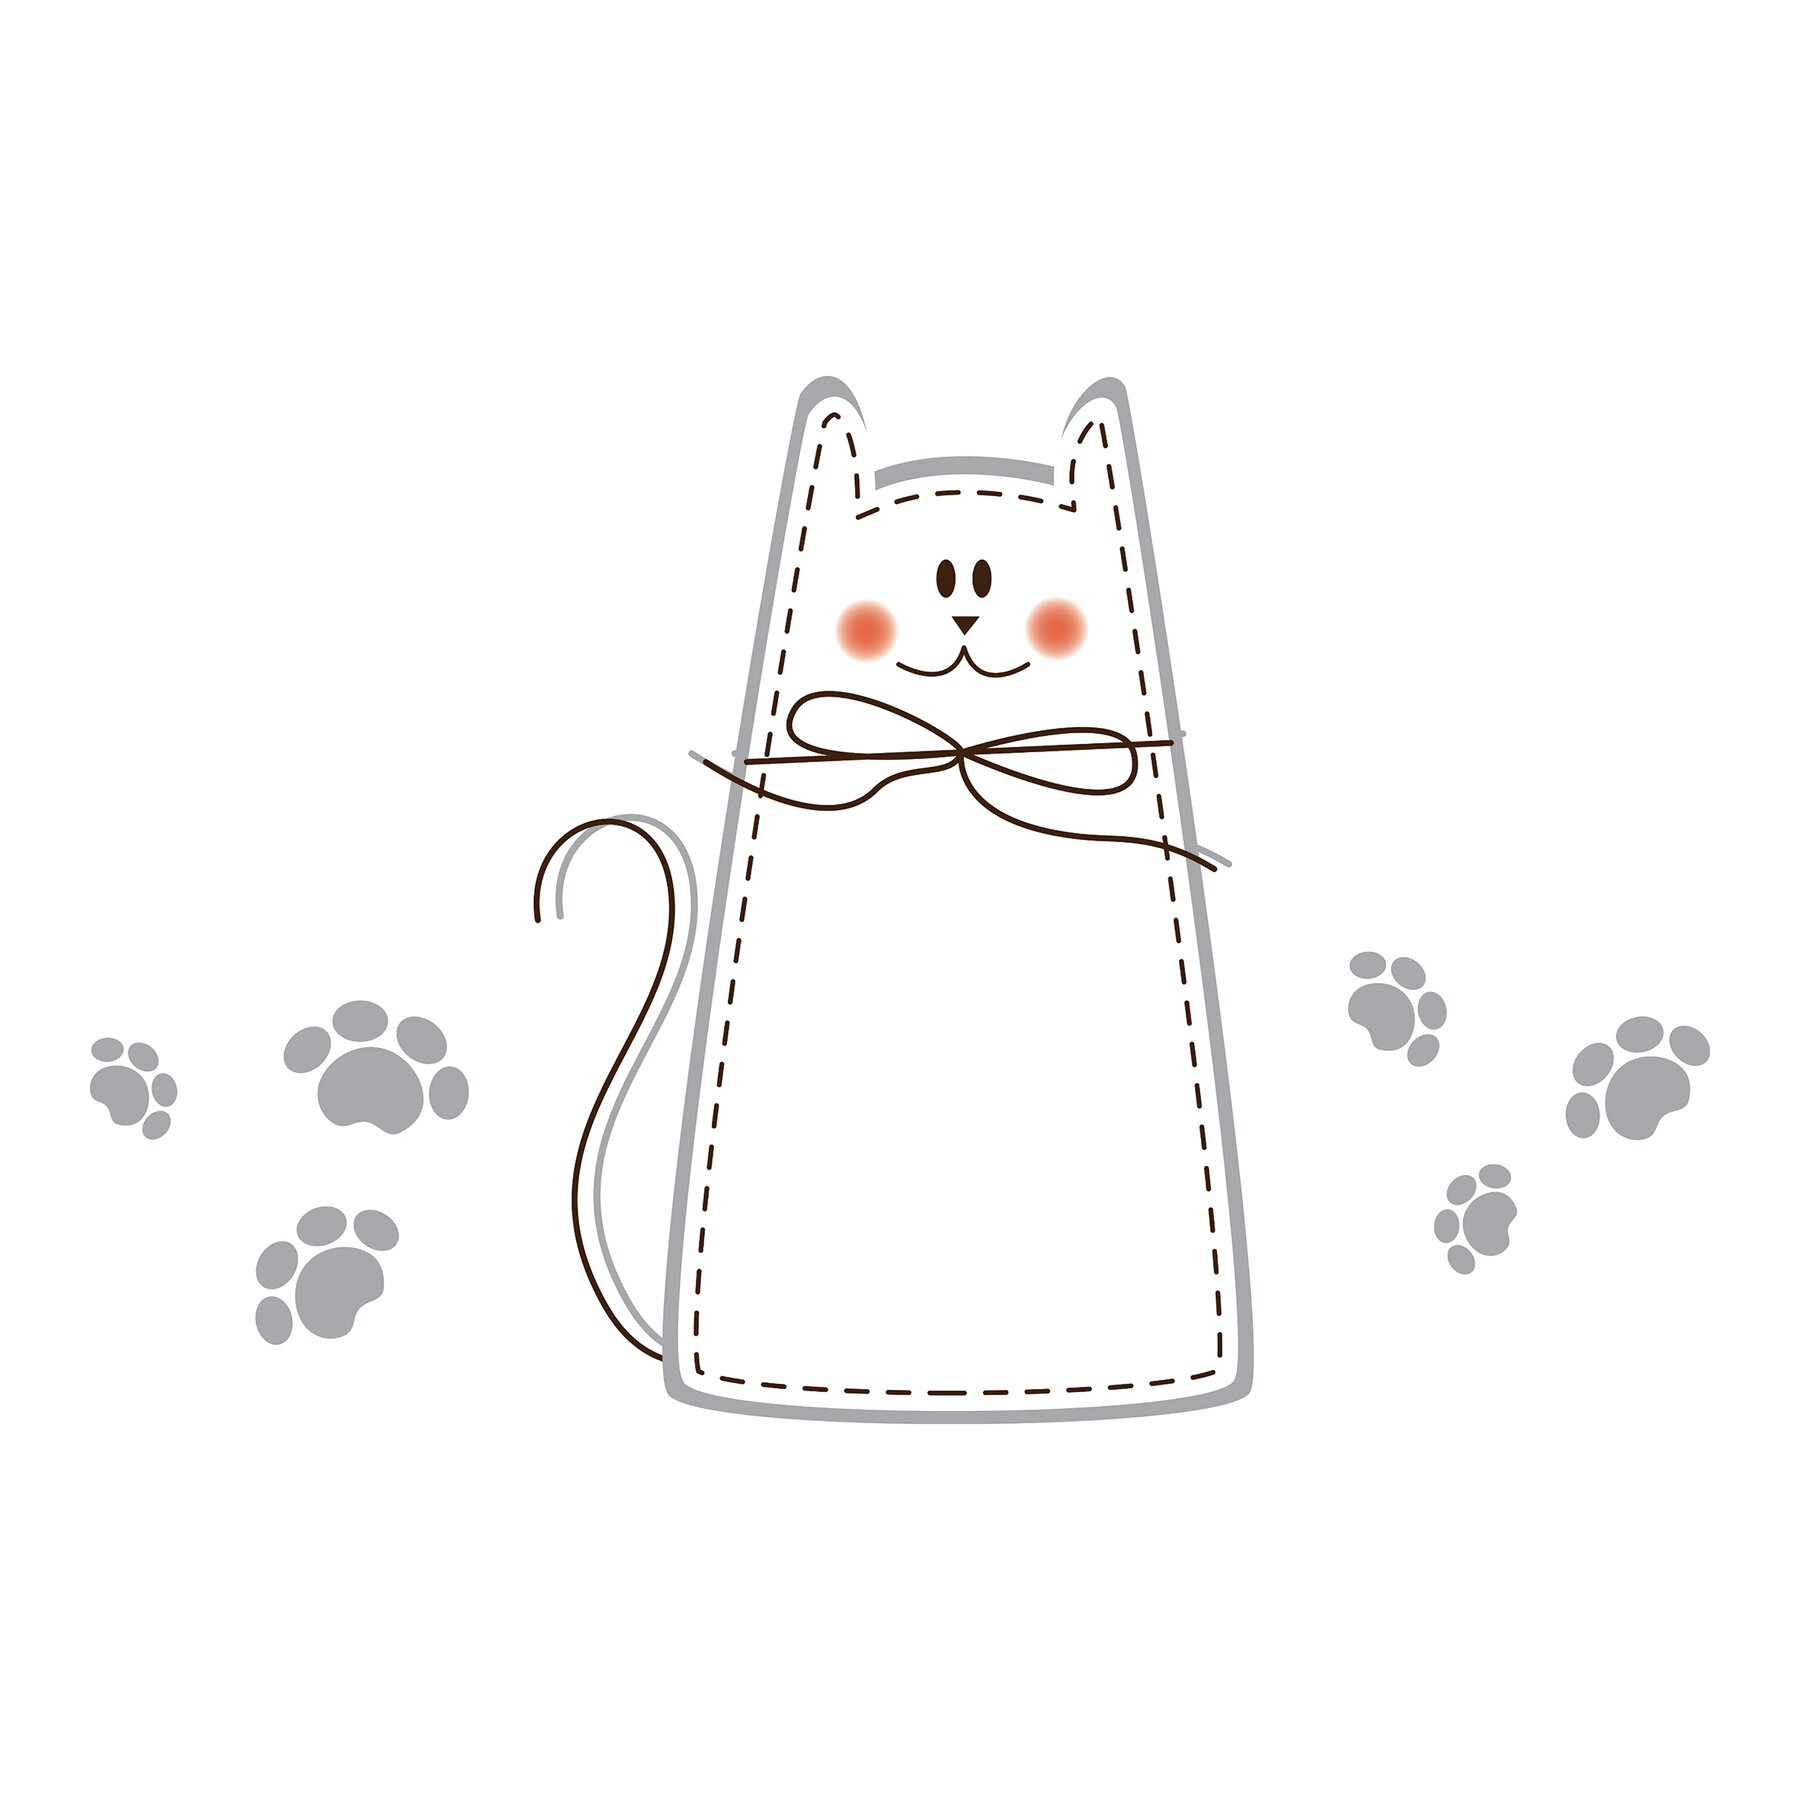 Wallpops home decor line cat whiteboard wall decal Home decor line wall stickers